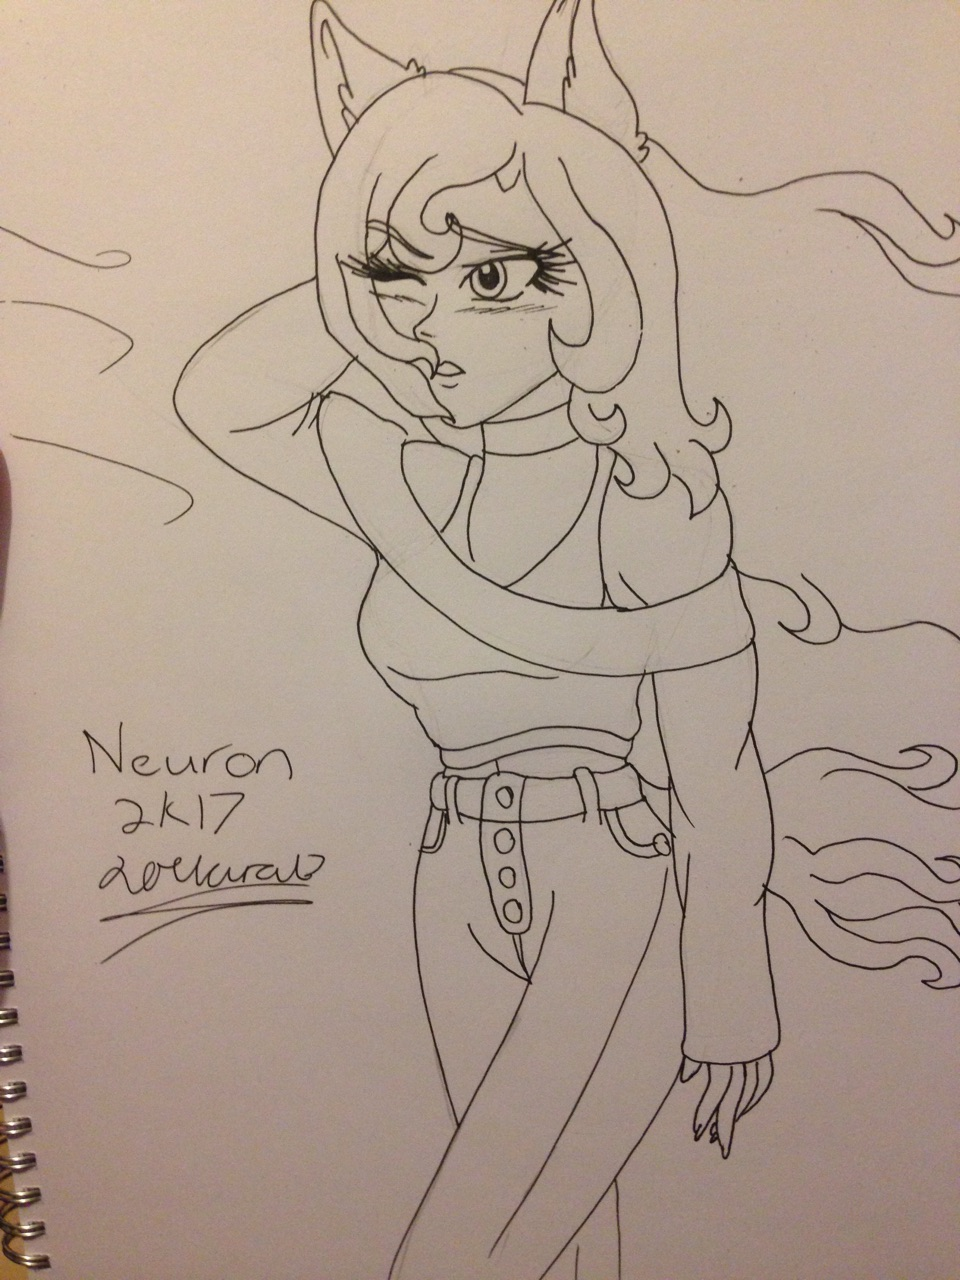 Neuron the pony human by Mad_person200